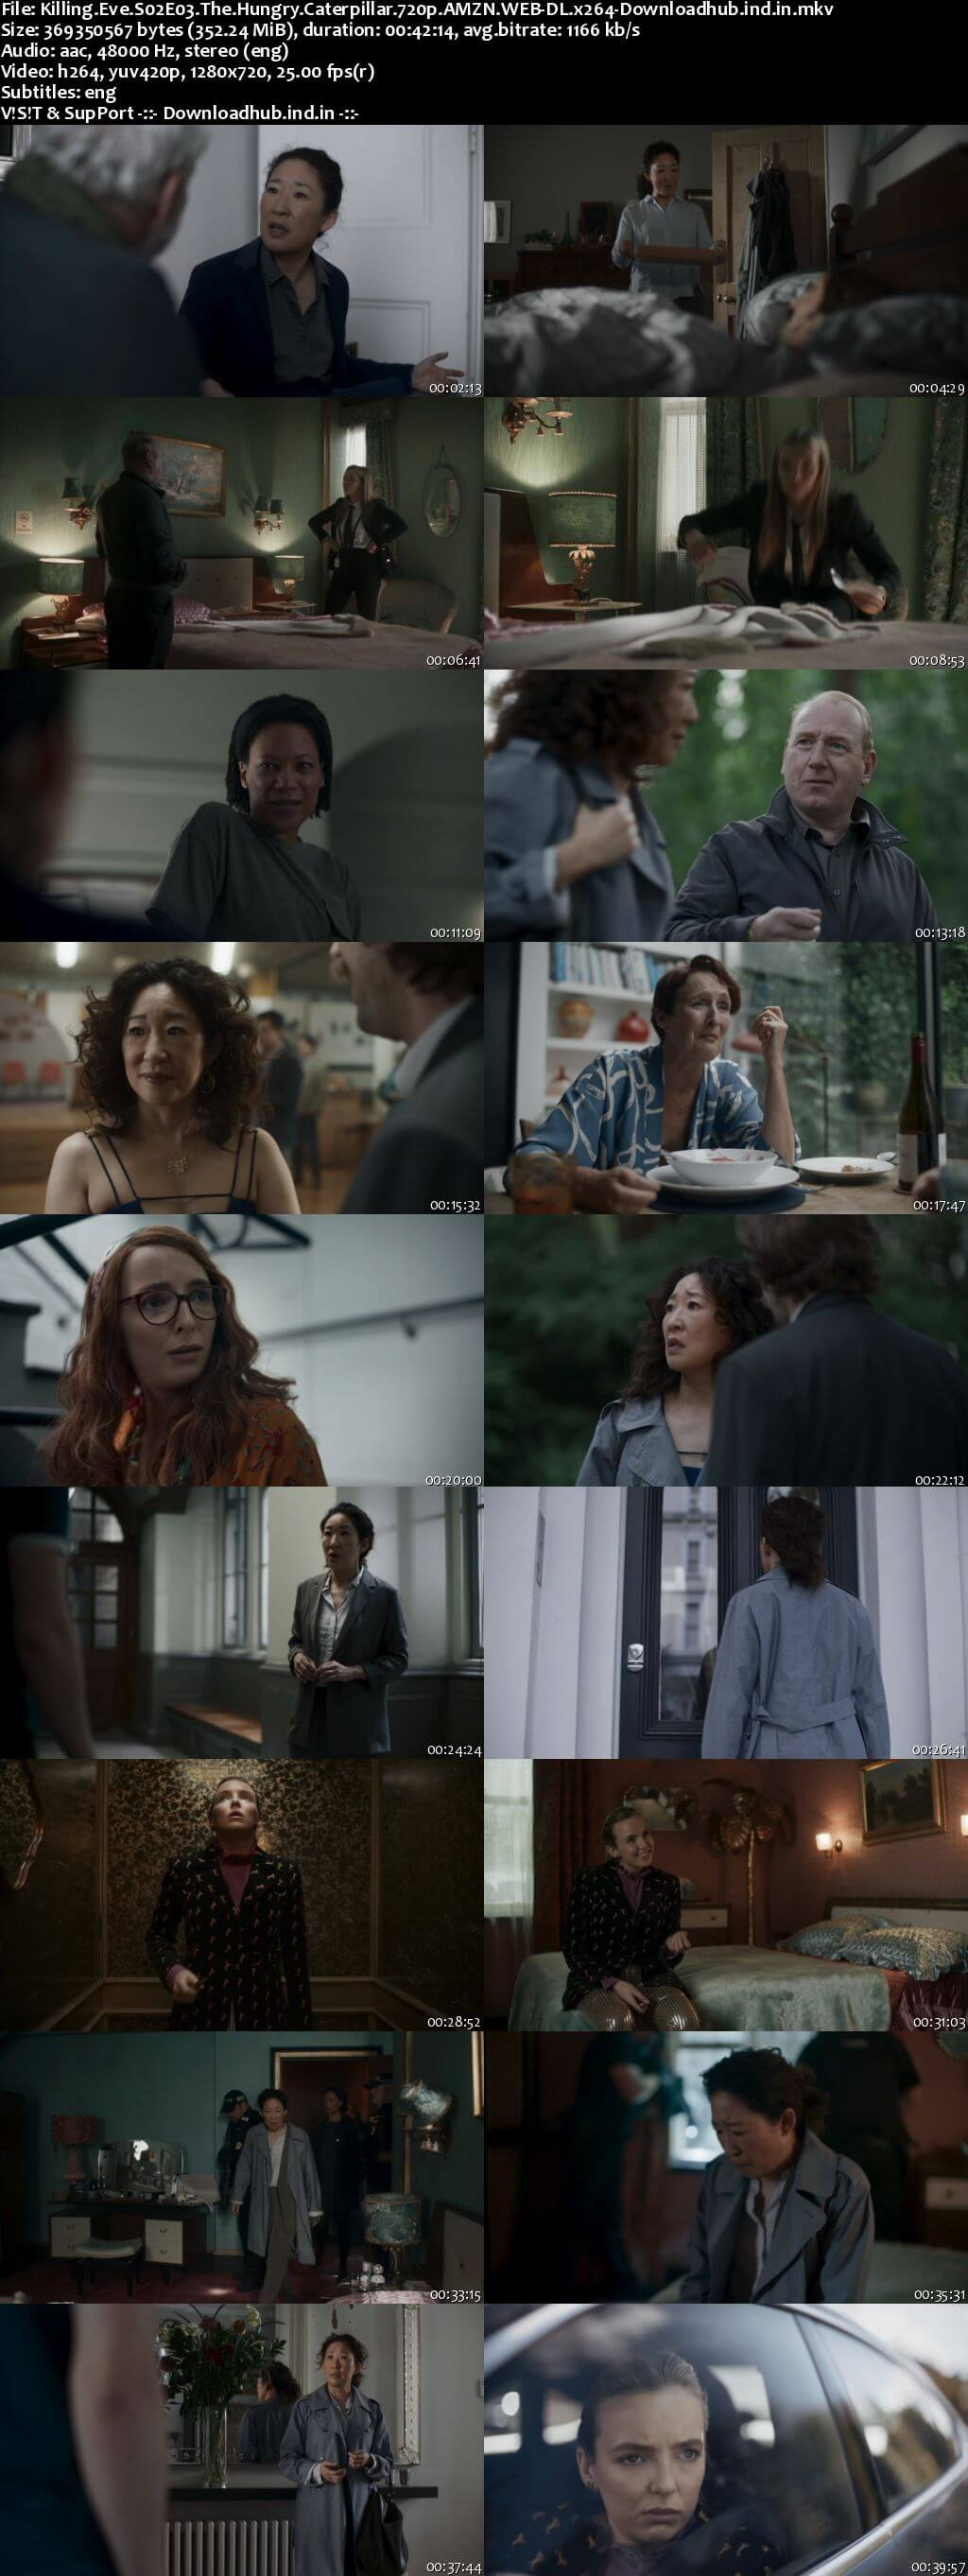 Killing Eve S02E03 350MB AMZN WEB-DL 720p ESubs